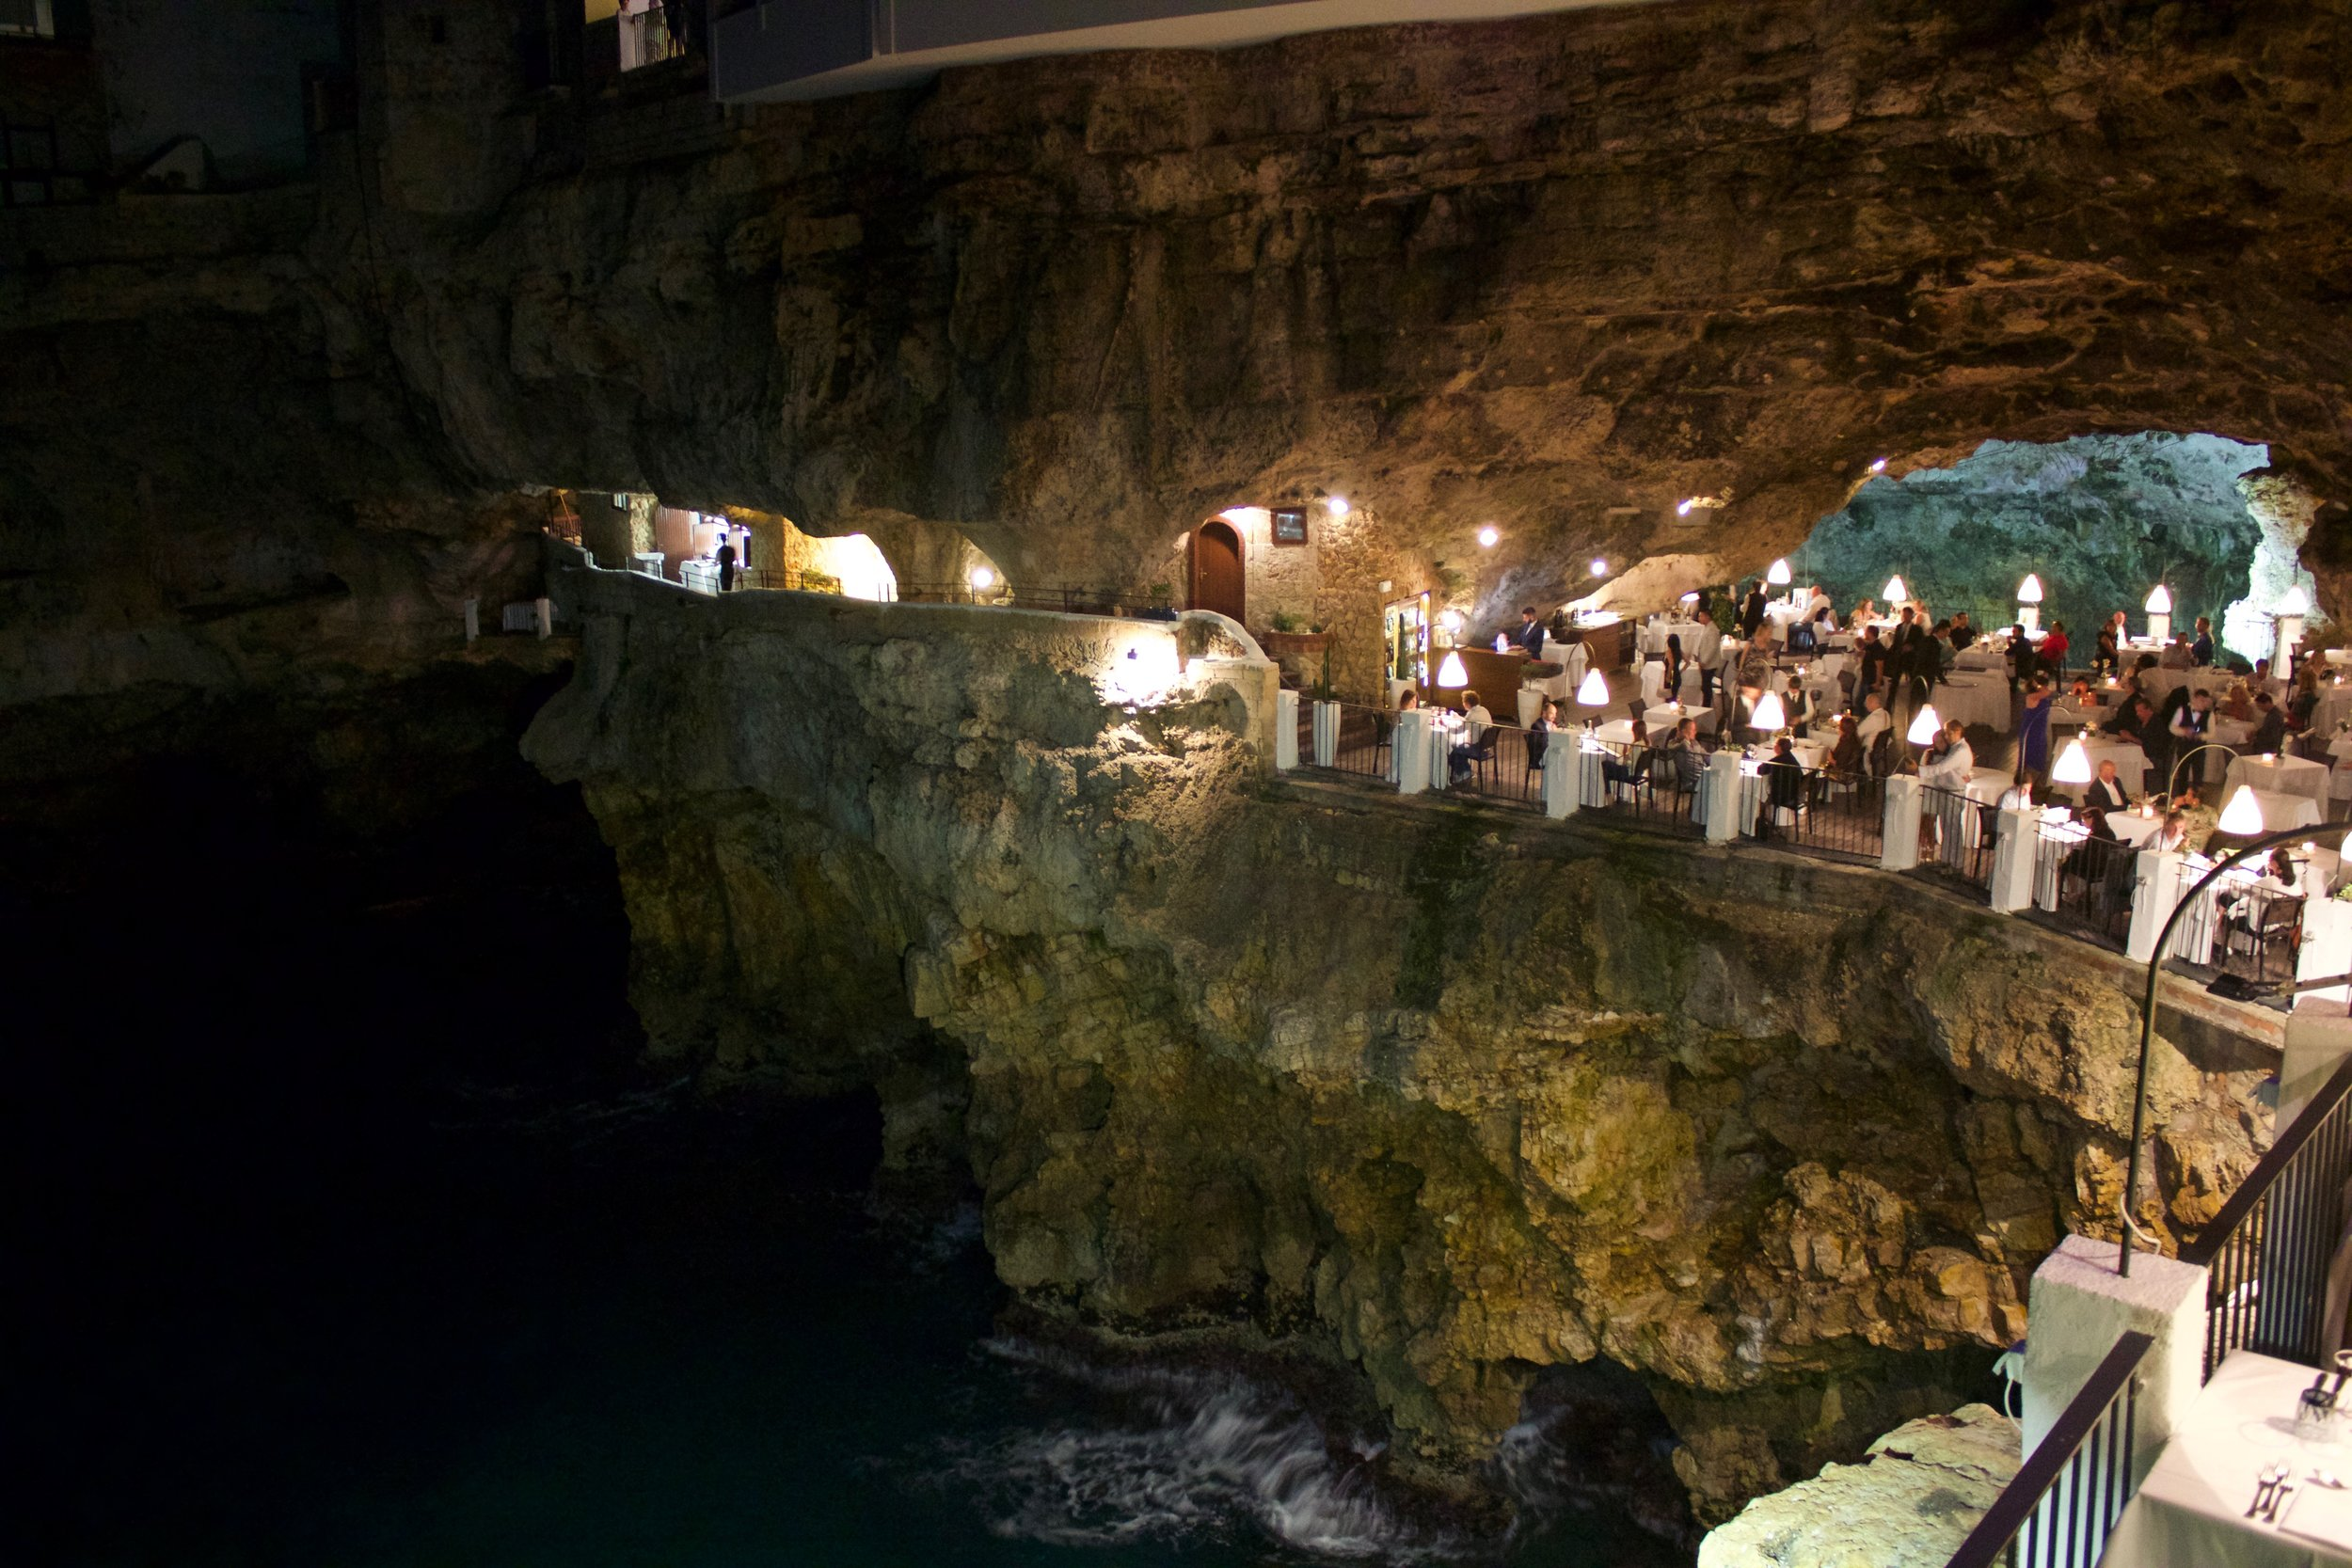 Ristorante Grotto Palazzese-Needless to say, it was stunning! Special date night with the hubby